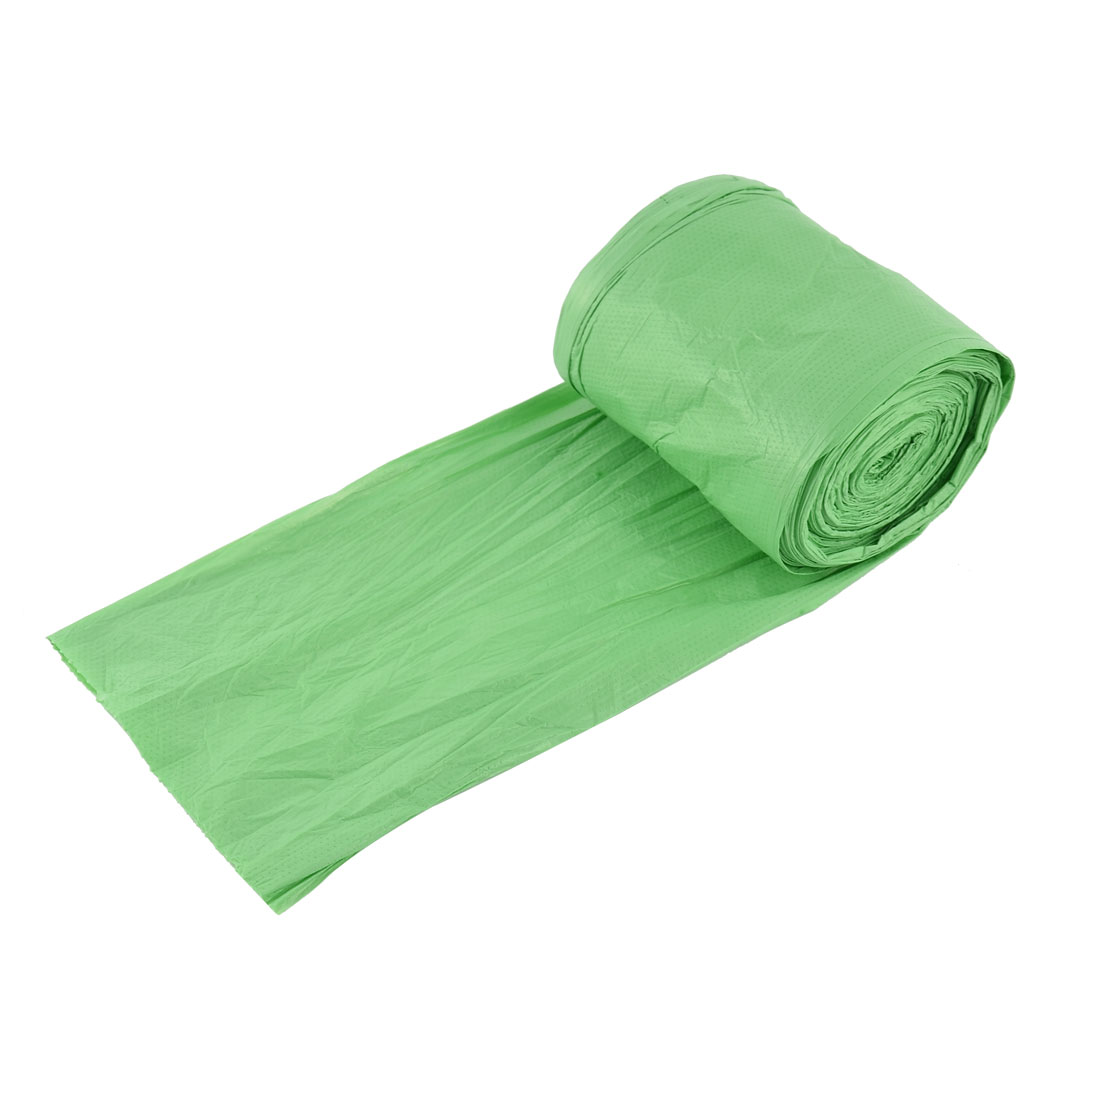 Home Office Kitchen Polyethylene Waste Rubbish Garbage Holder Bag Roll Green 50 x 60cm